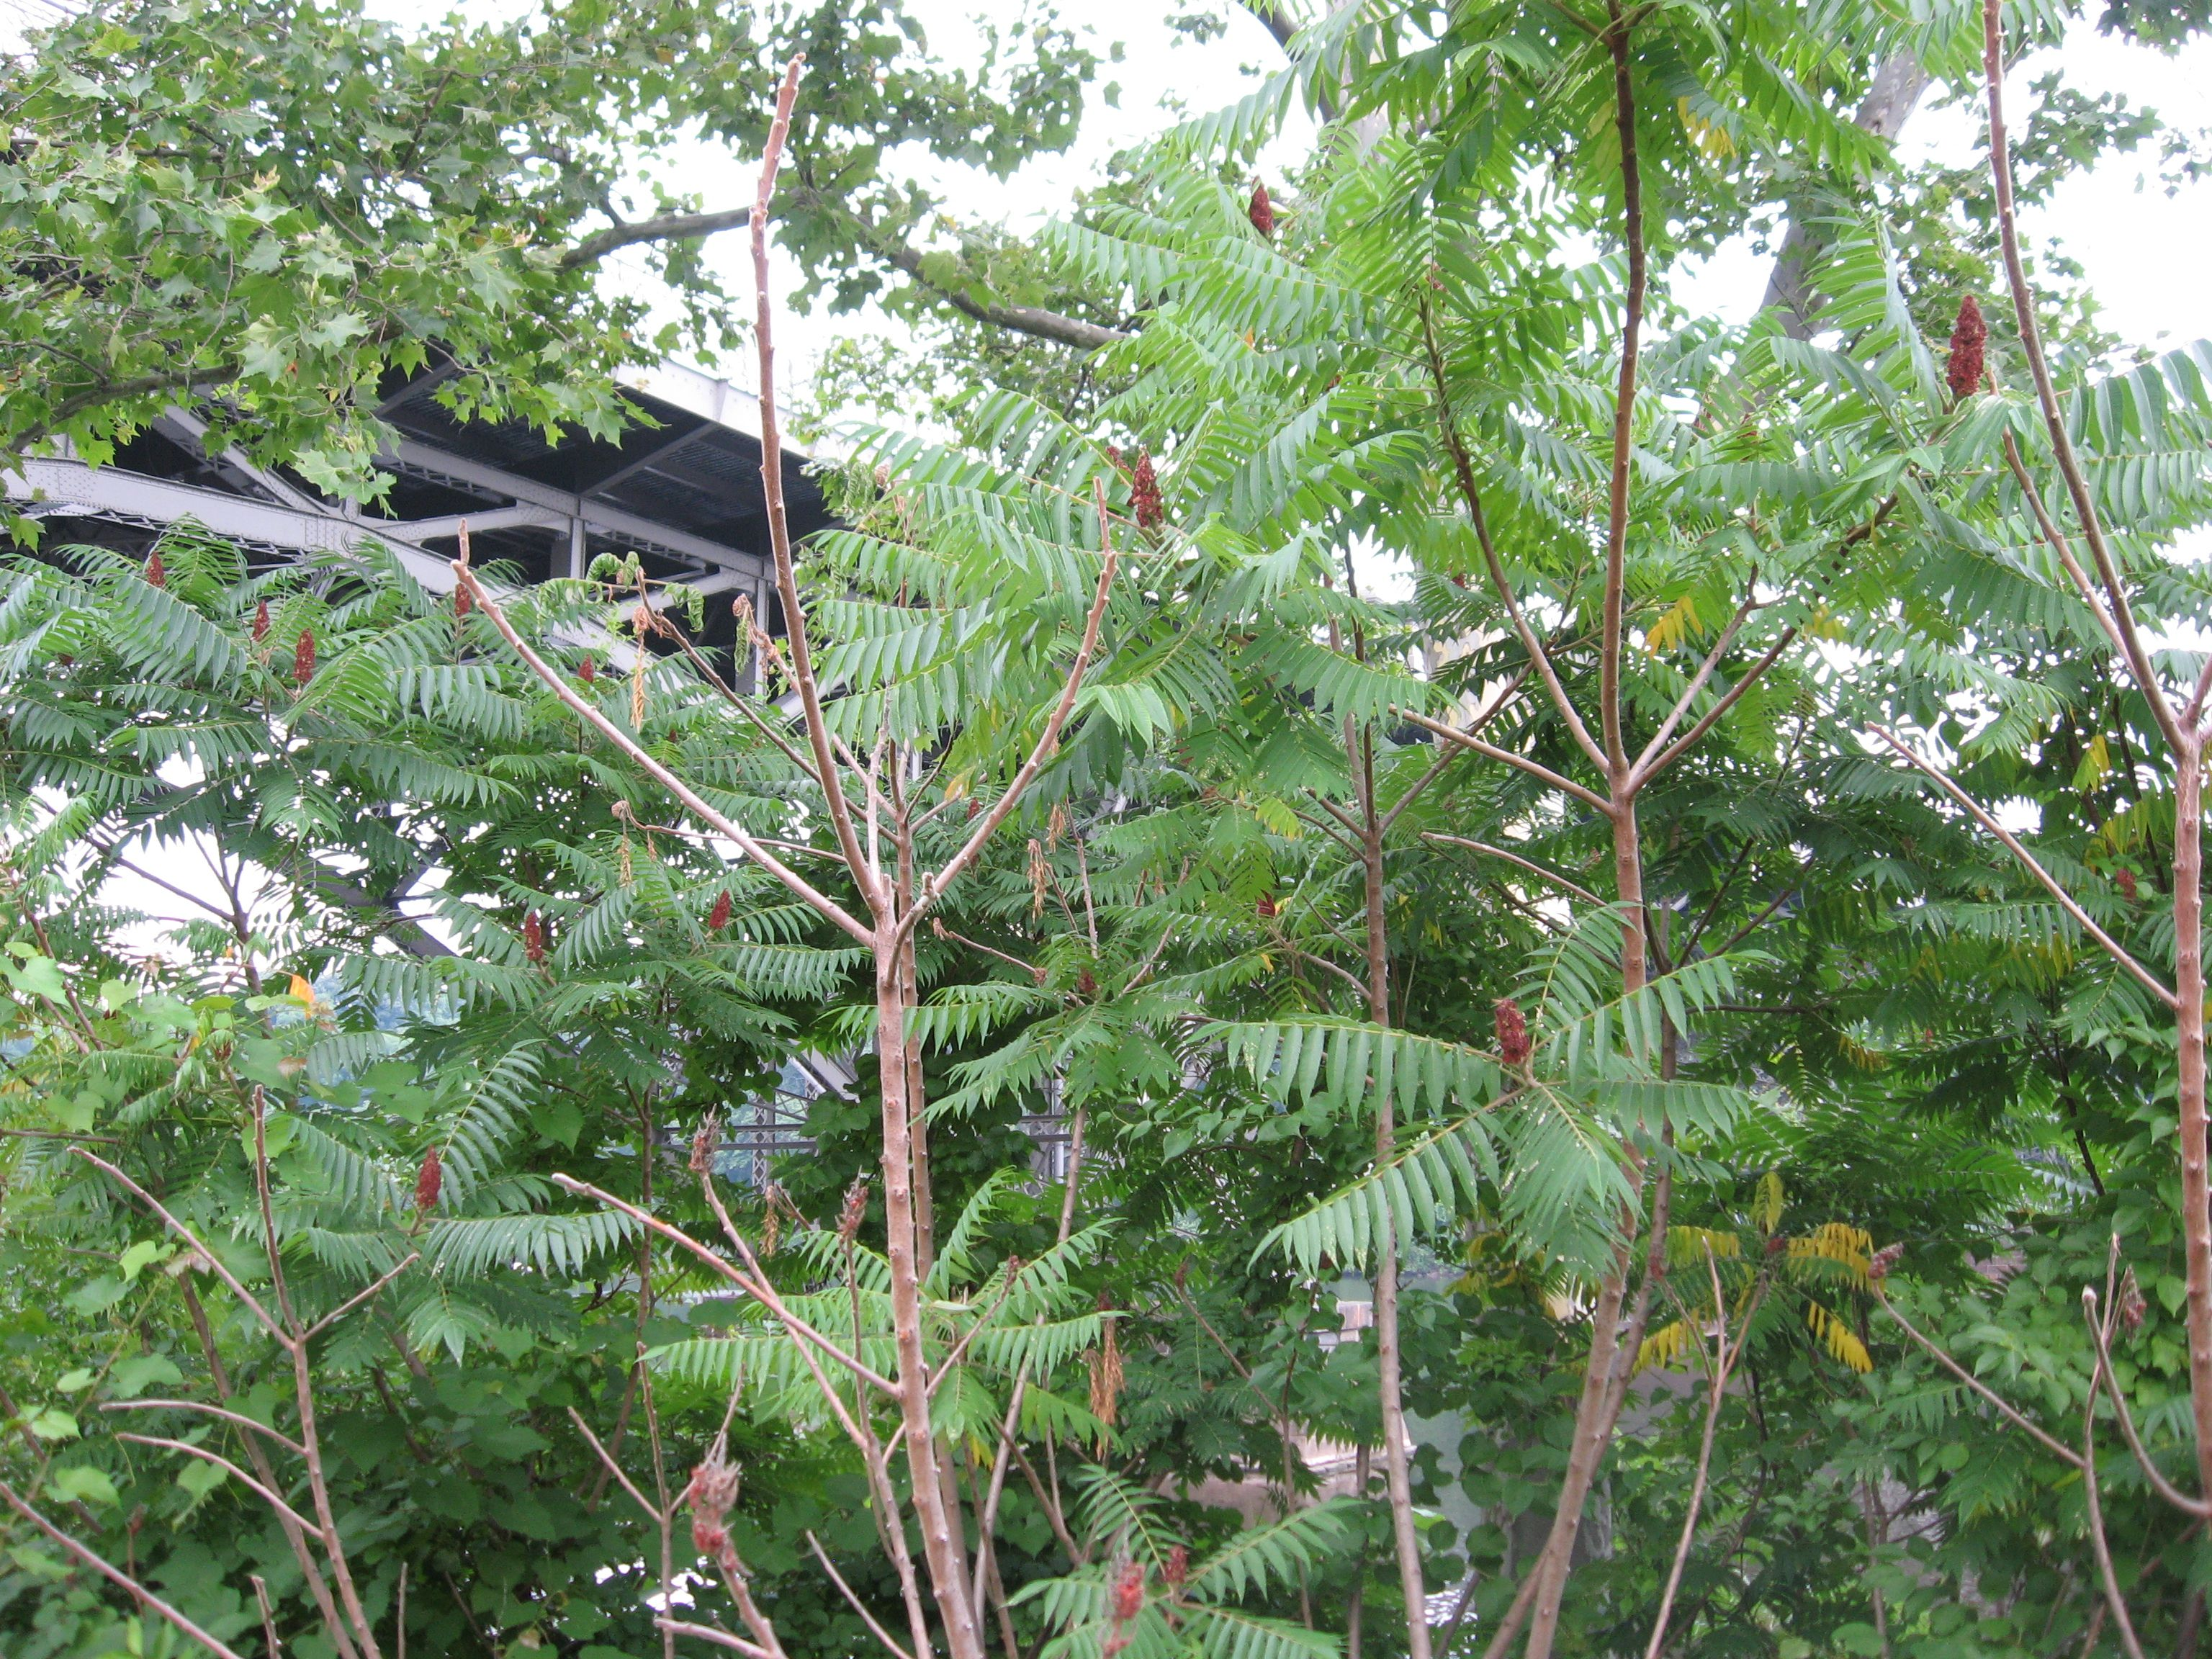 What is poison sumac look like